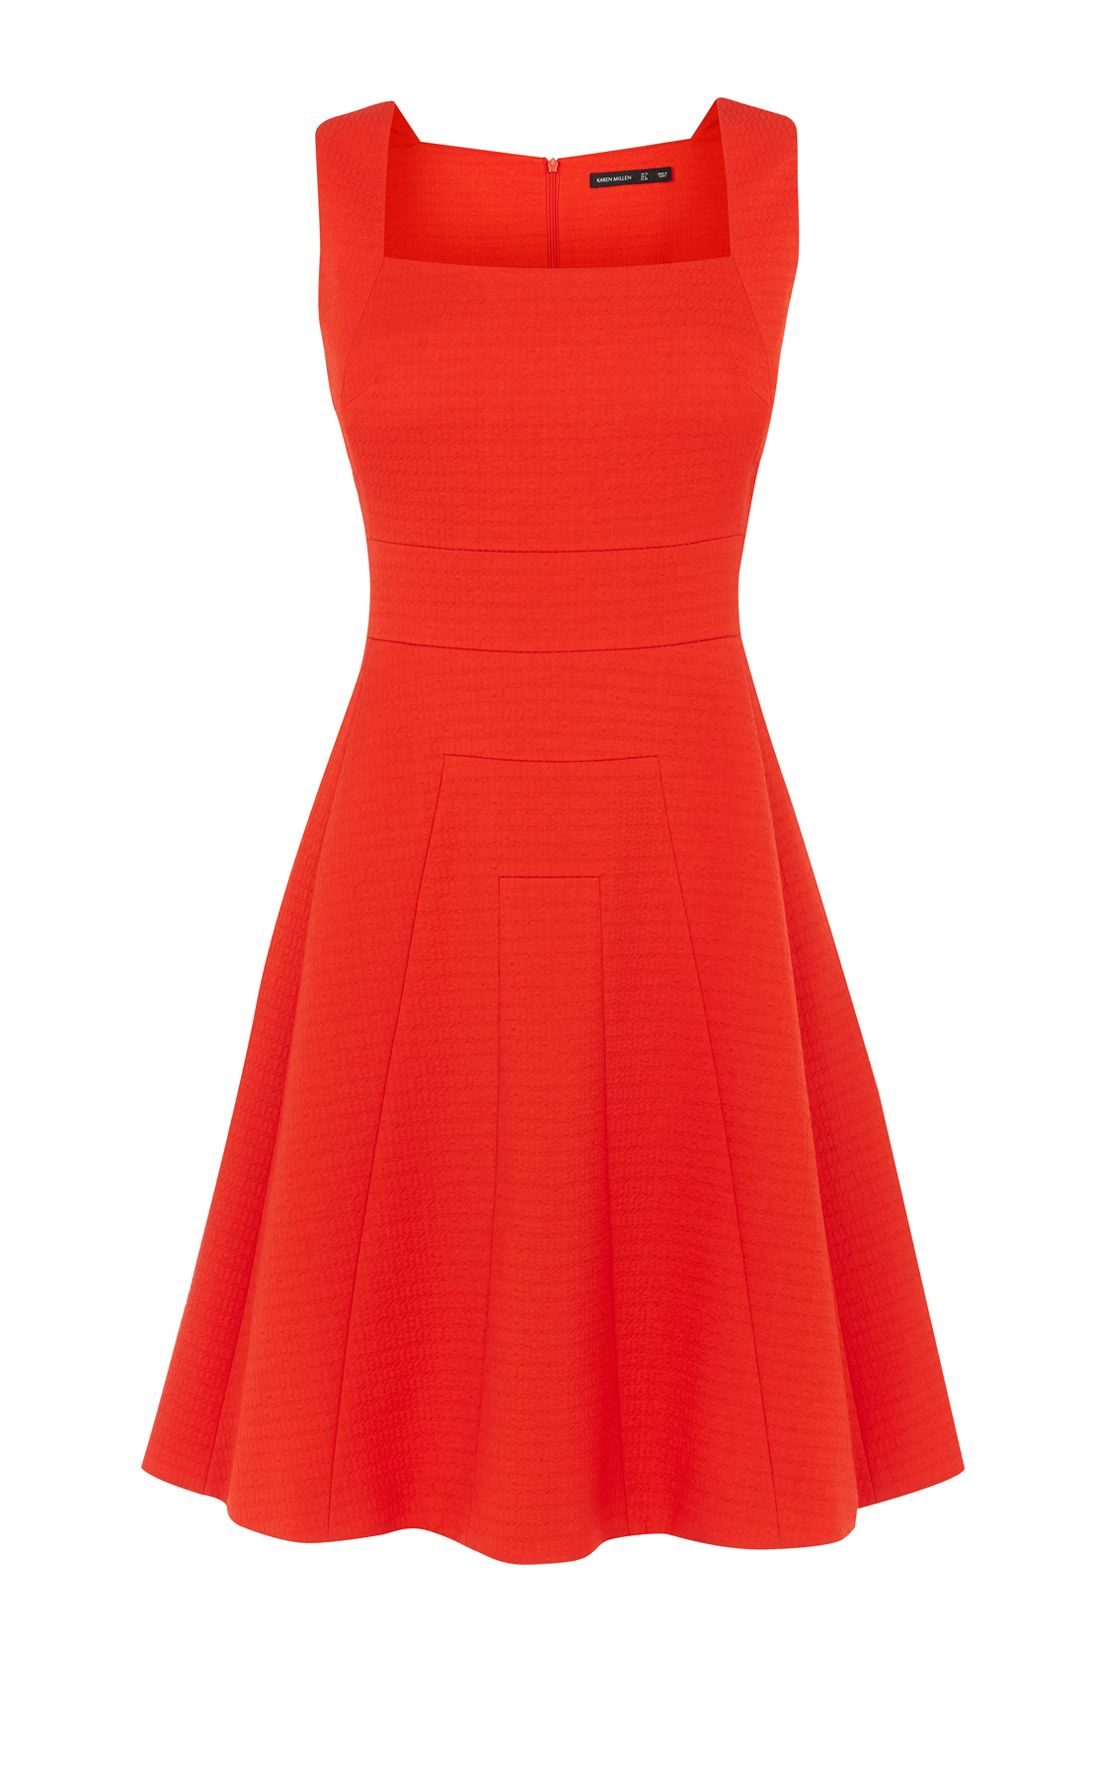 Karen Millen Full-Skirted Mini Dress, Orange